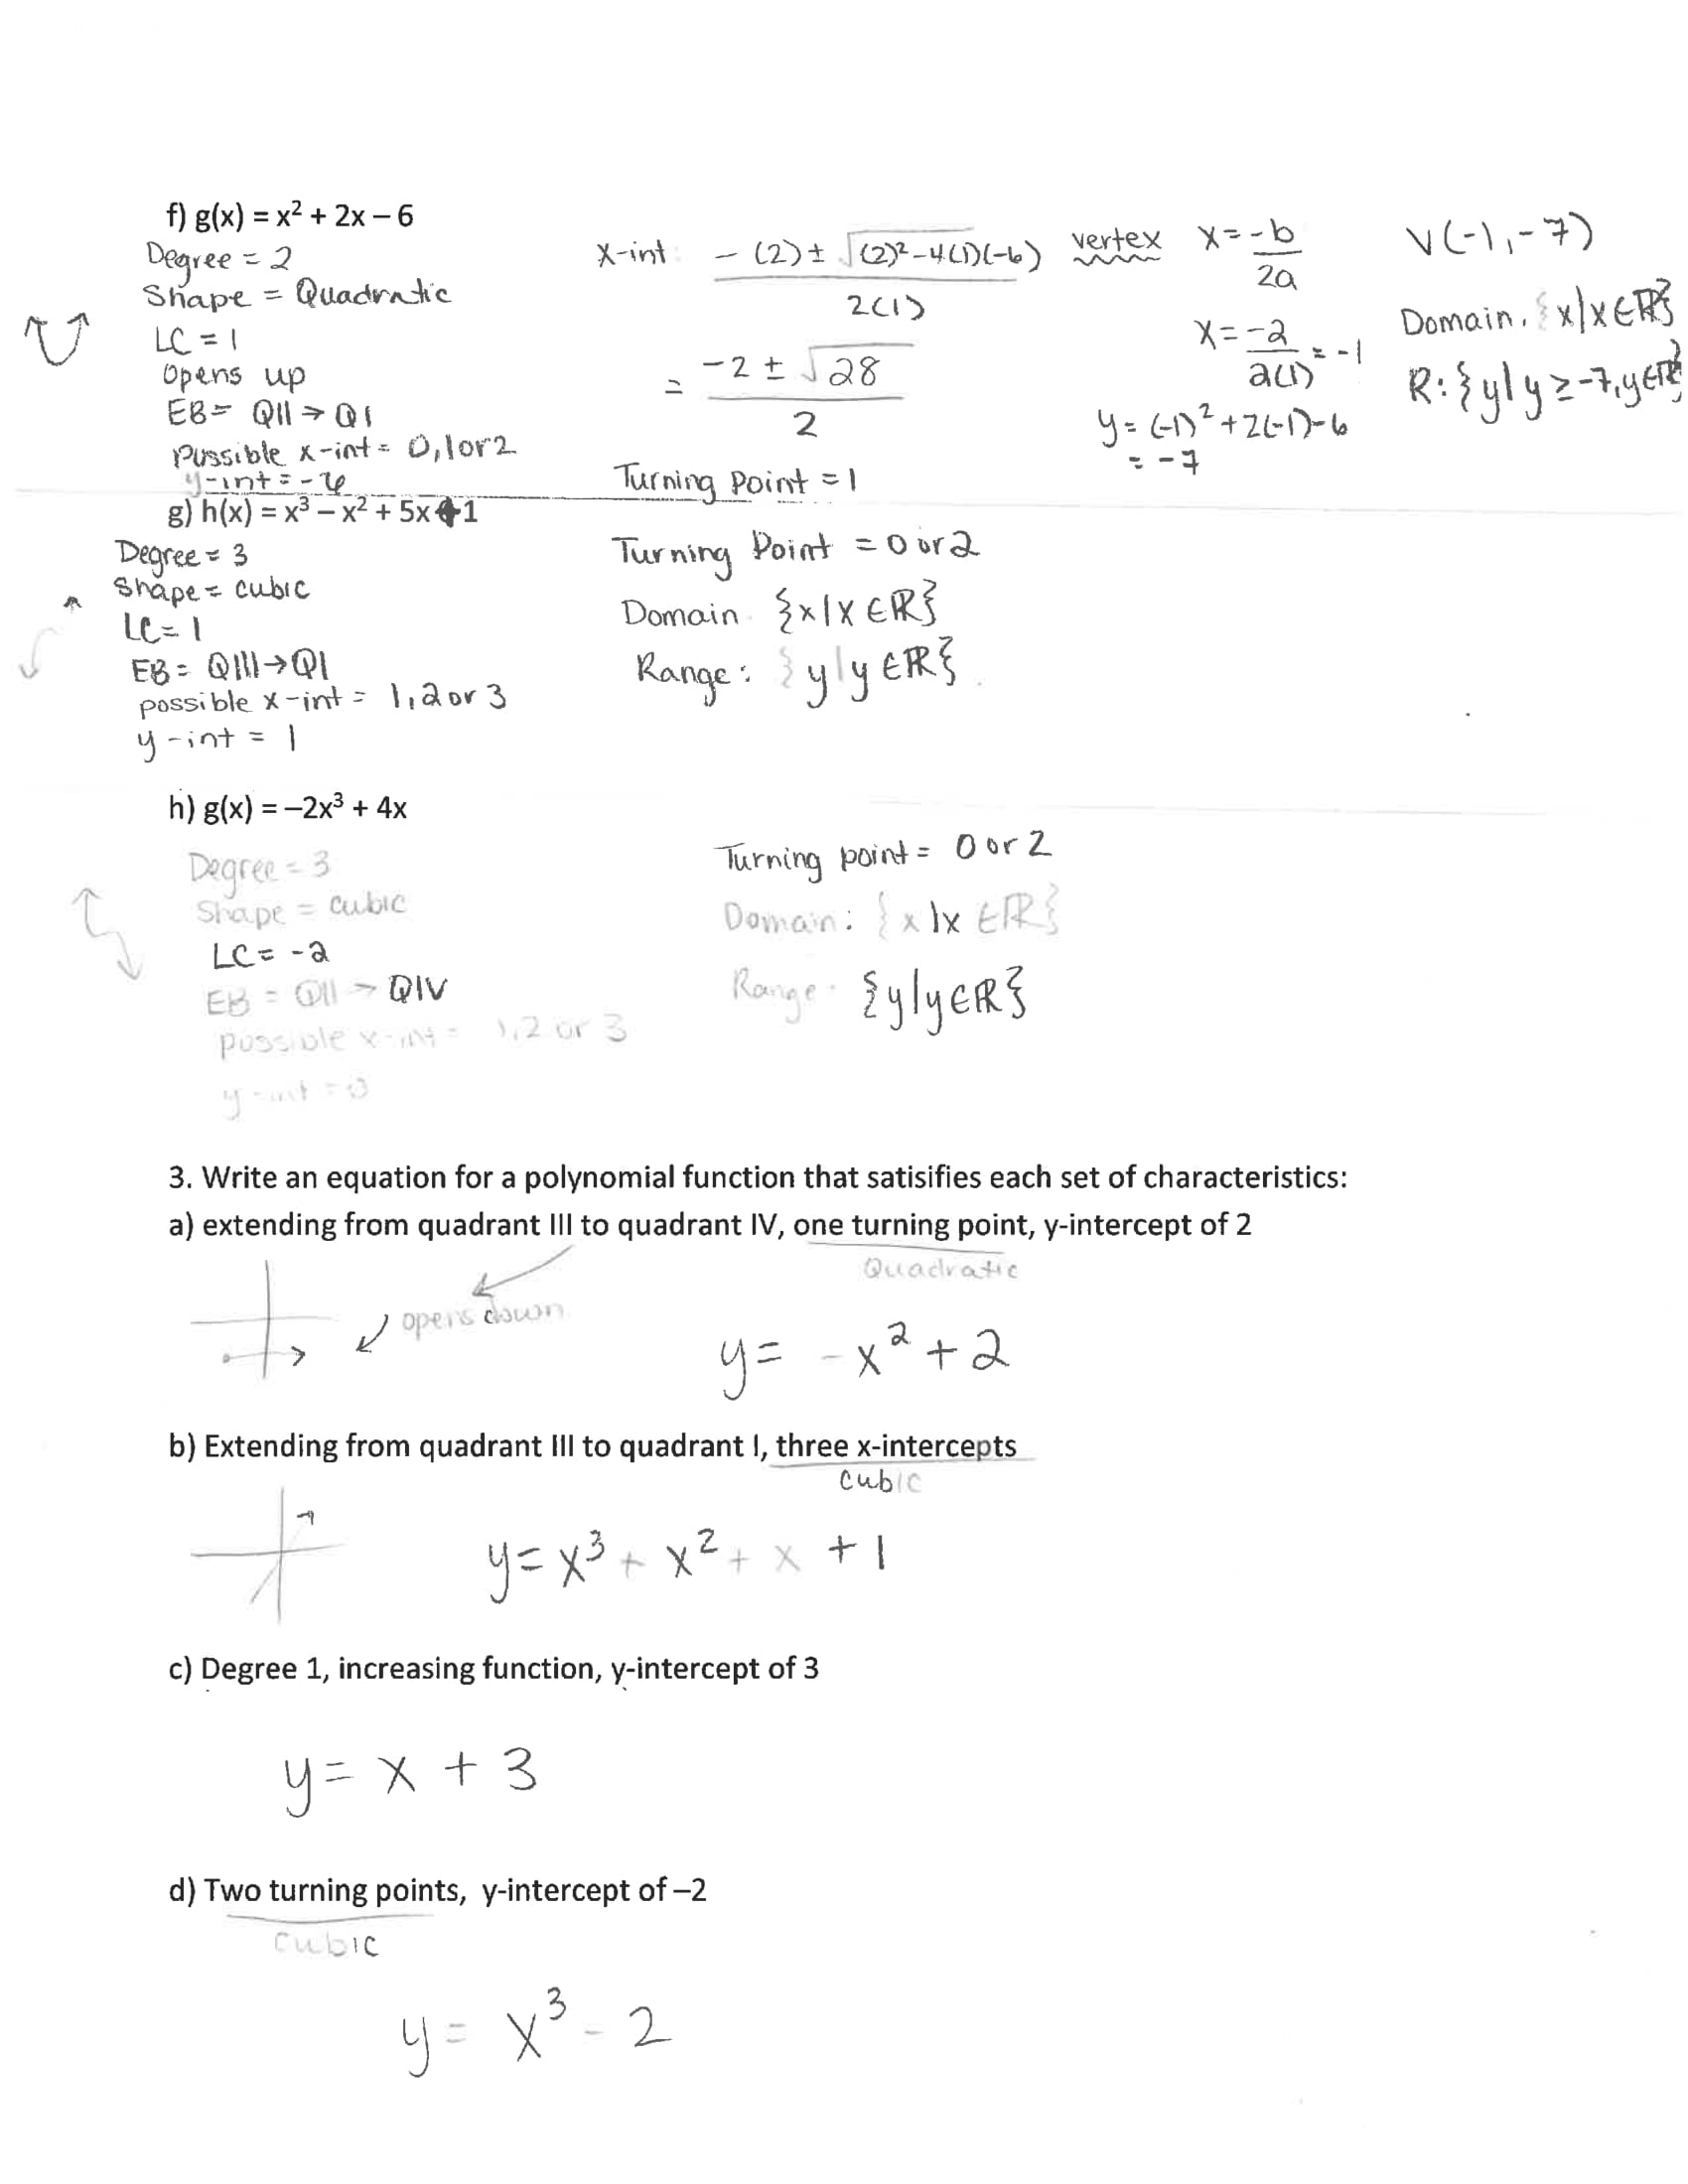 Worksheet Writing Polynomial Functions A 5 3 Answers